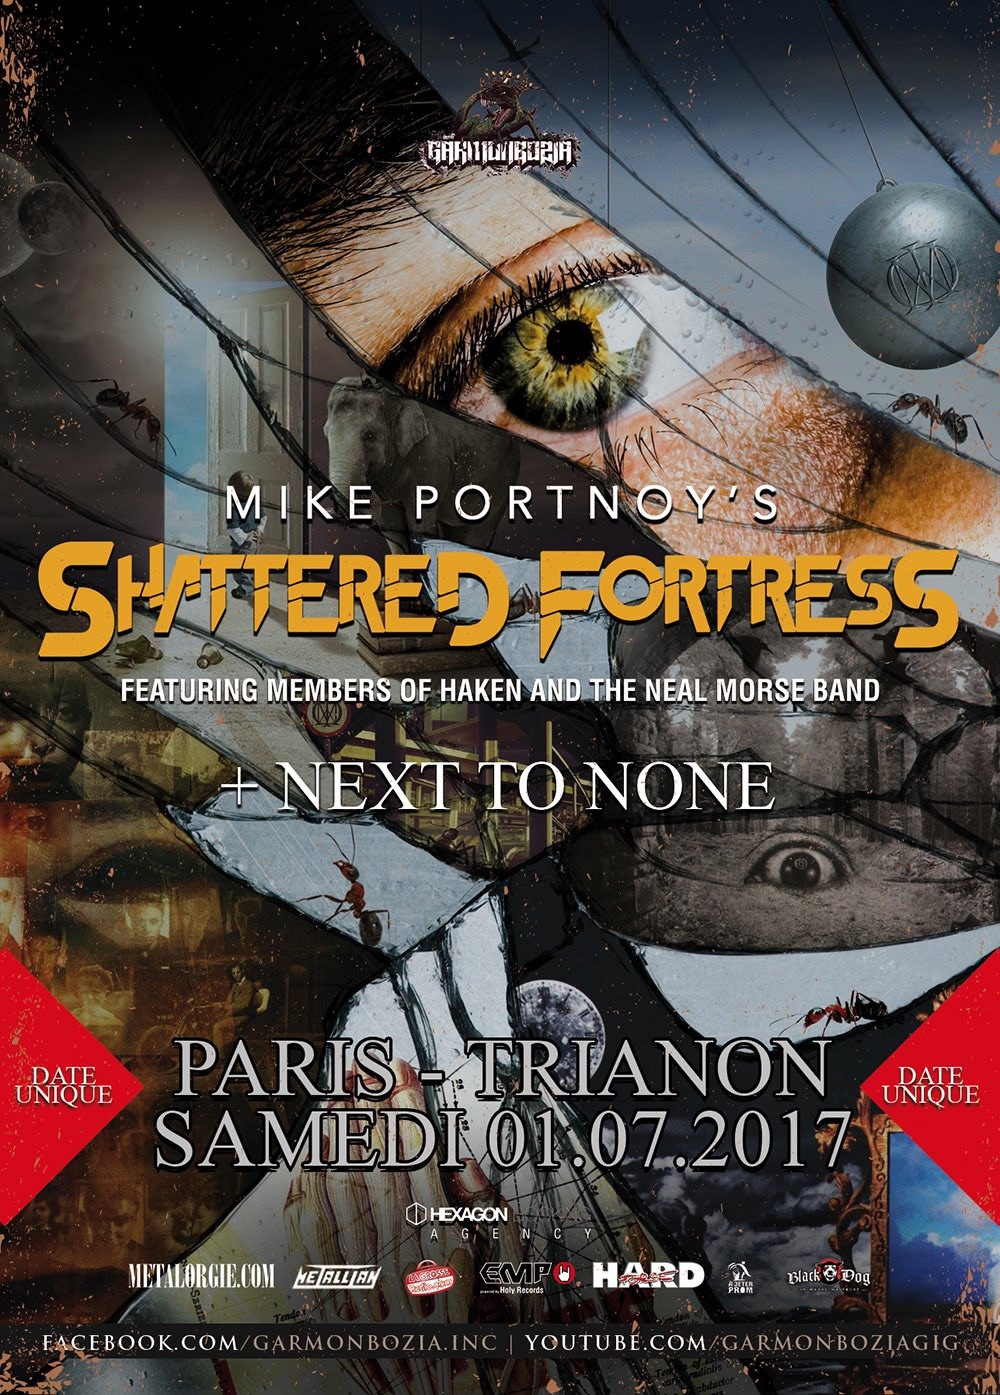 Mike Portnoy's Shattered Fortress - Paris, Le Trianon - 1er juillet 2017